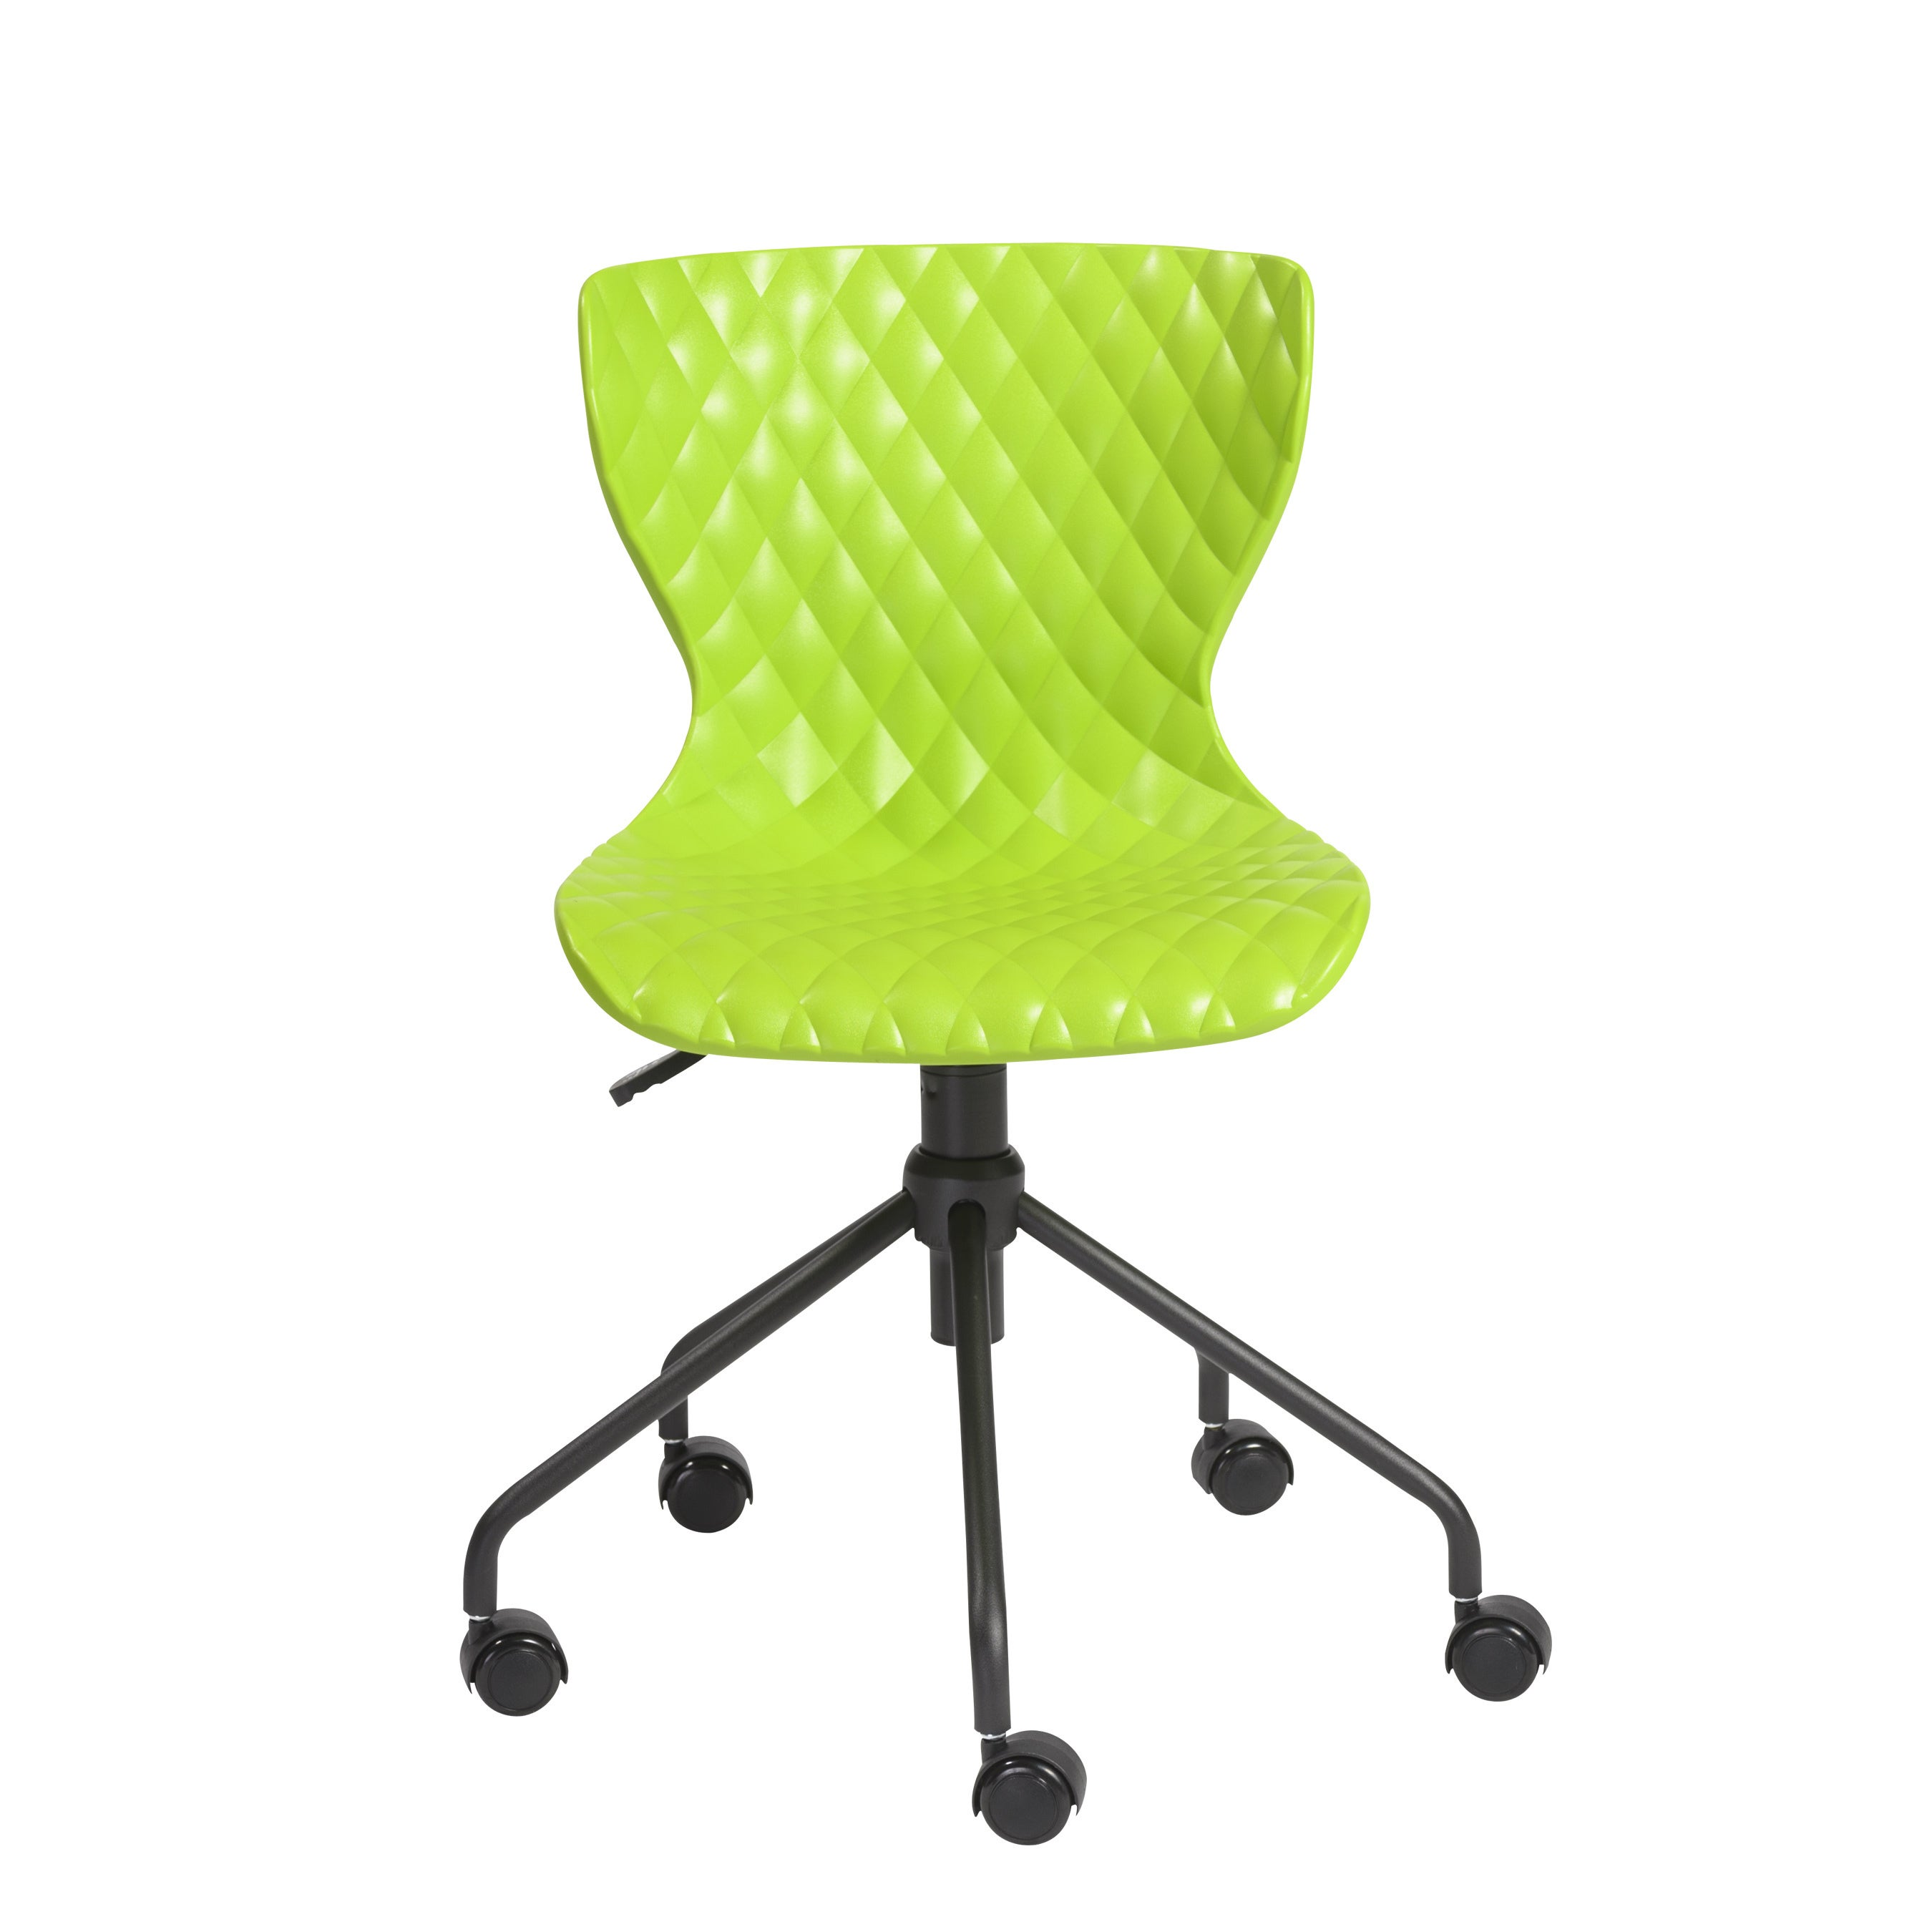 Euro Style Daly Green Office Chair (Green/Black)